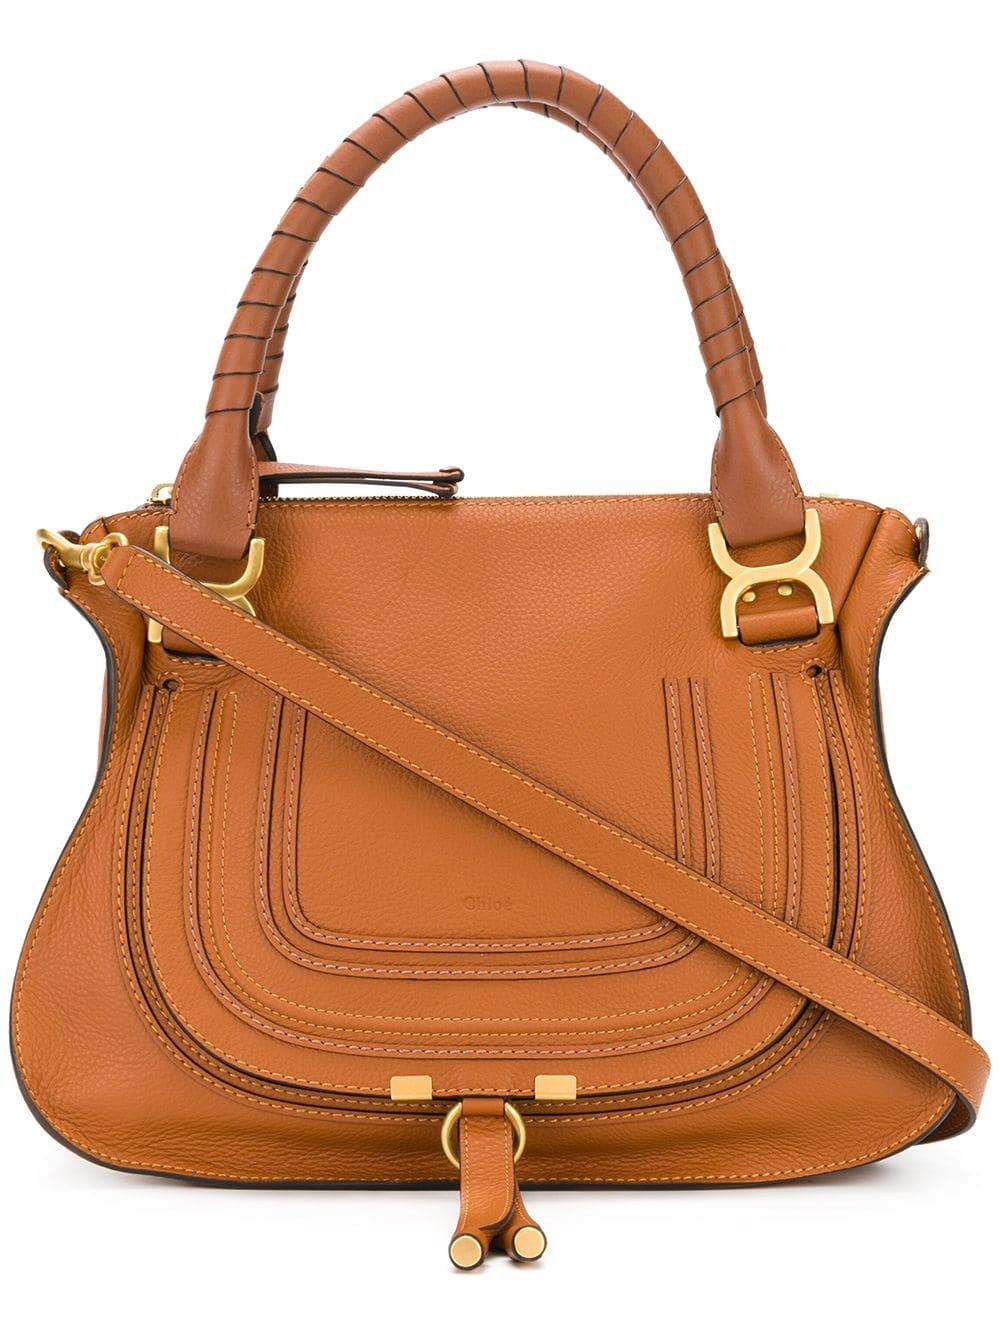 Marcie Medium Double Carry Grained Leather